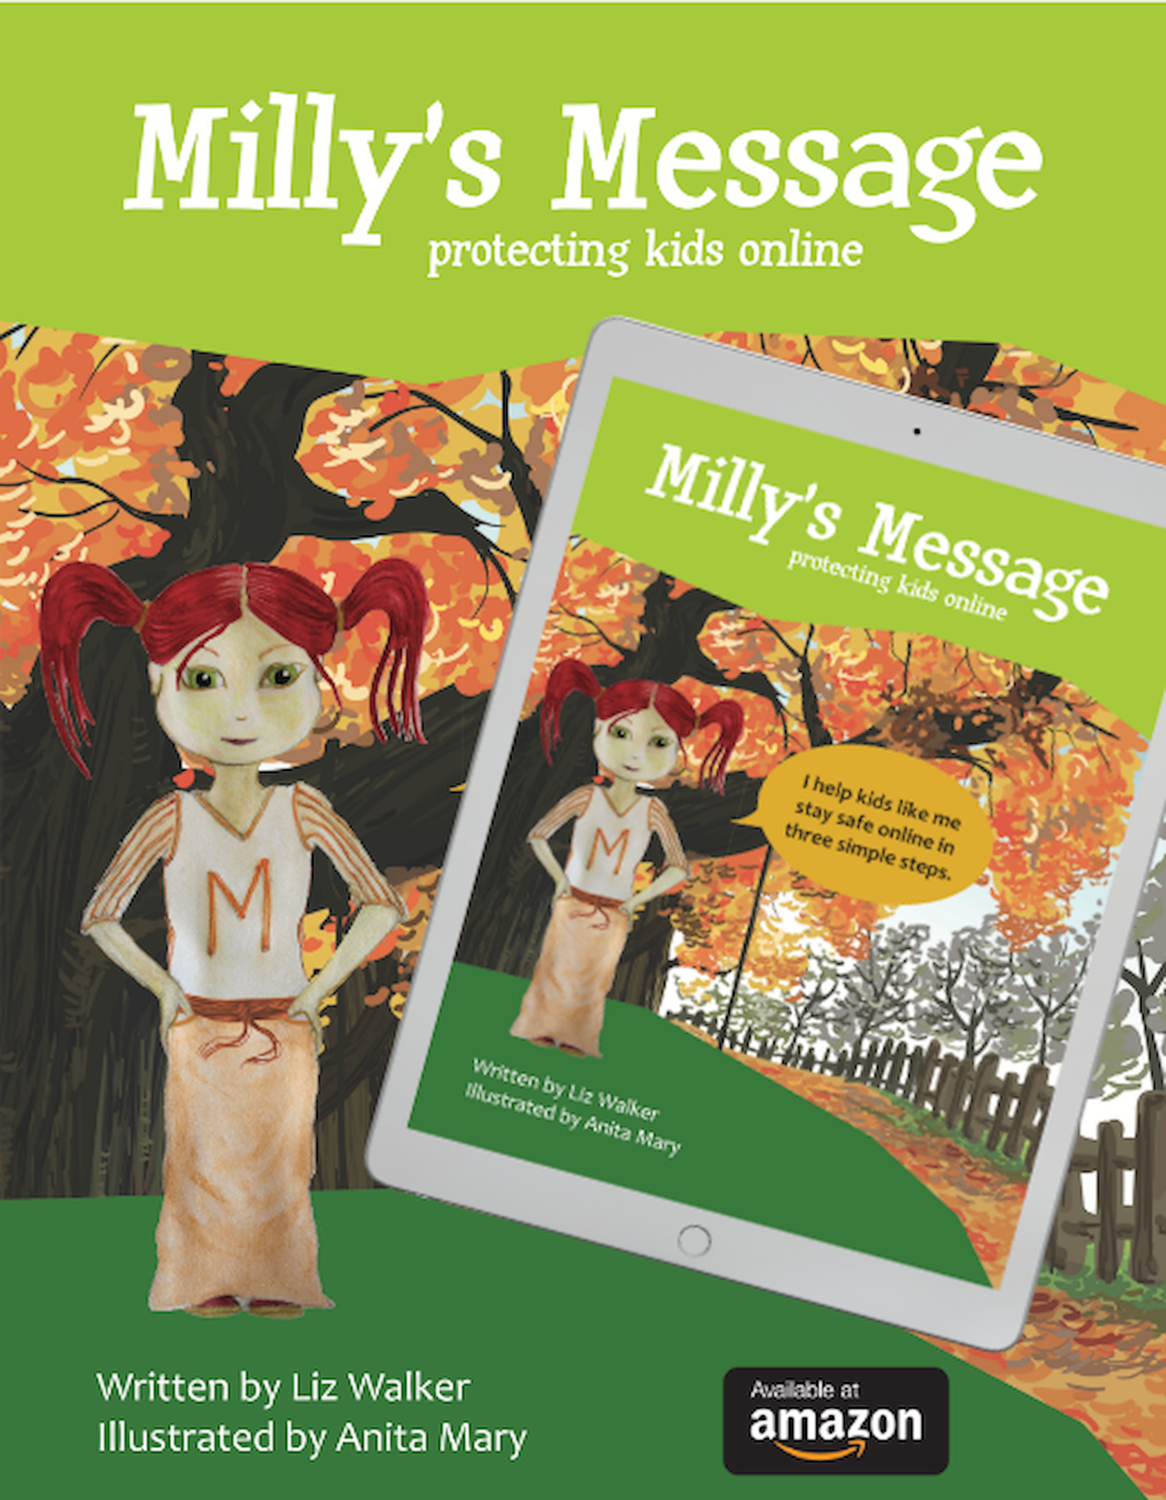 Milly's Message - protecting kids online